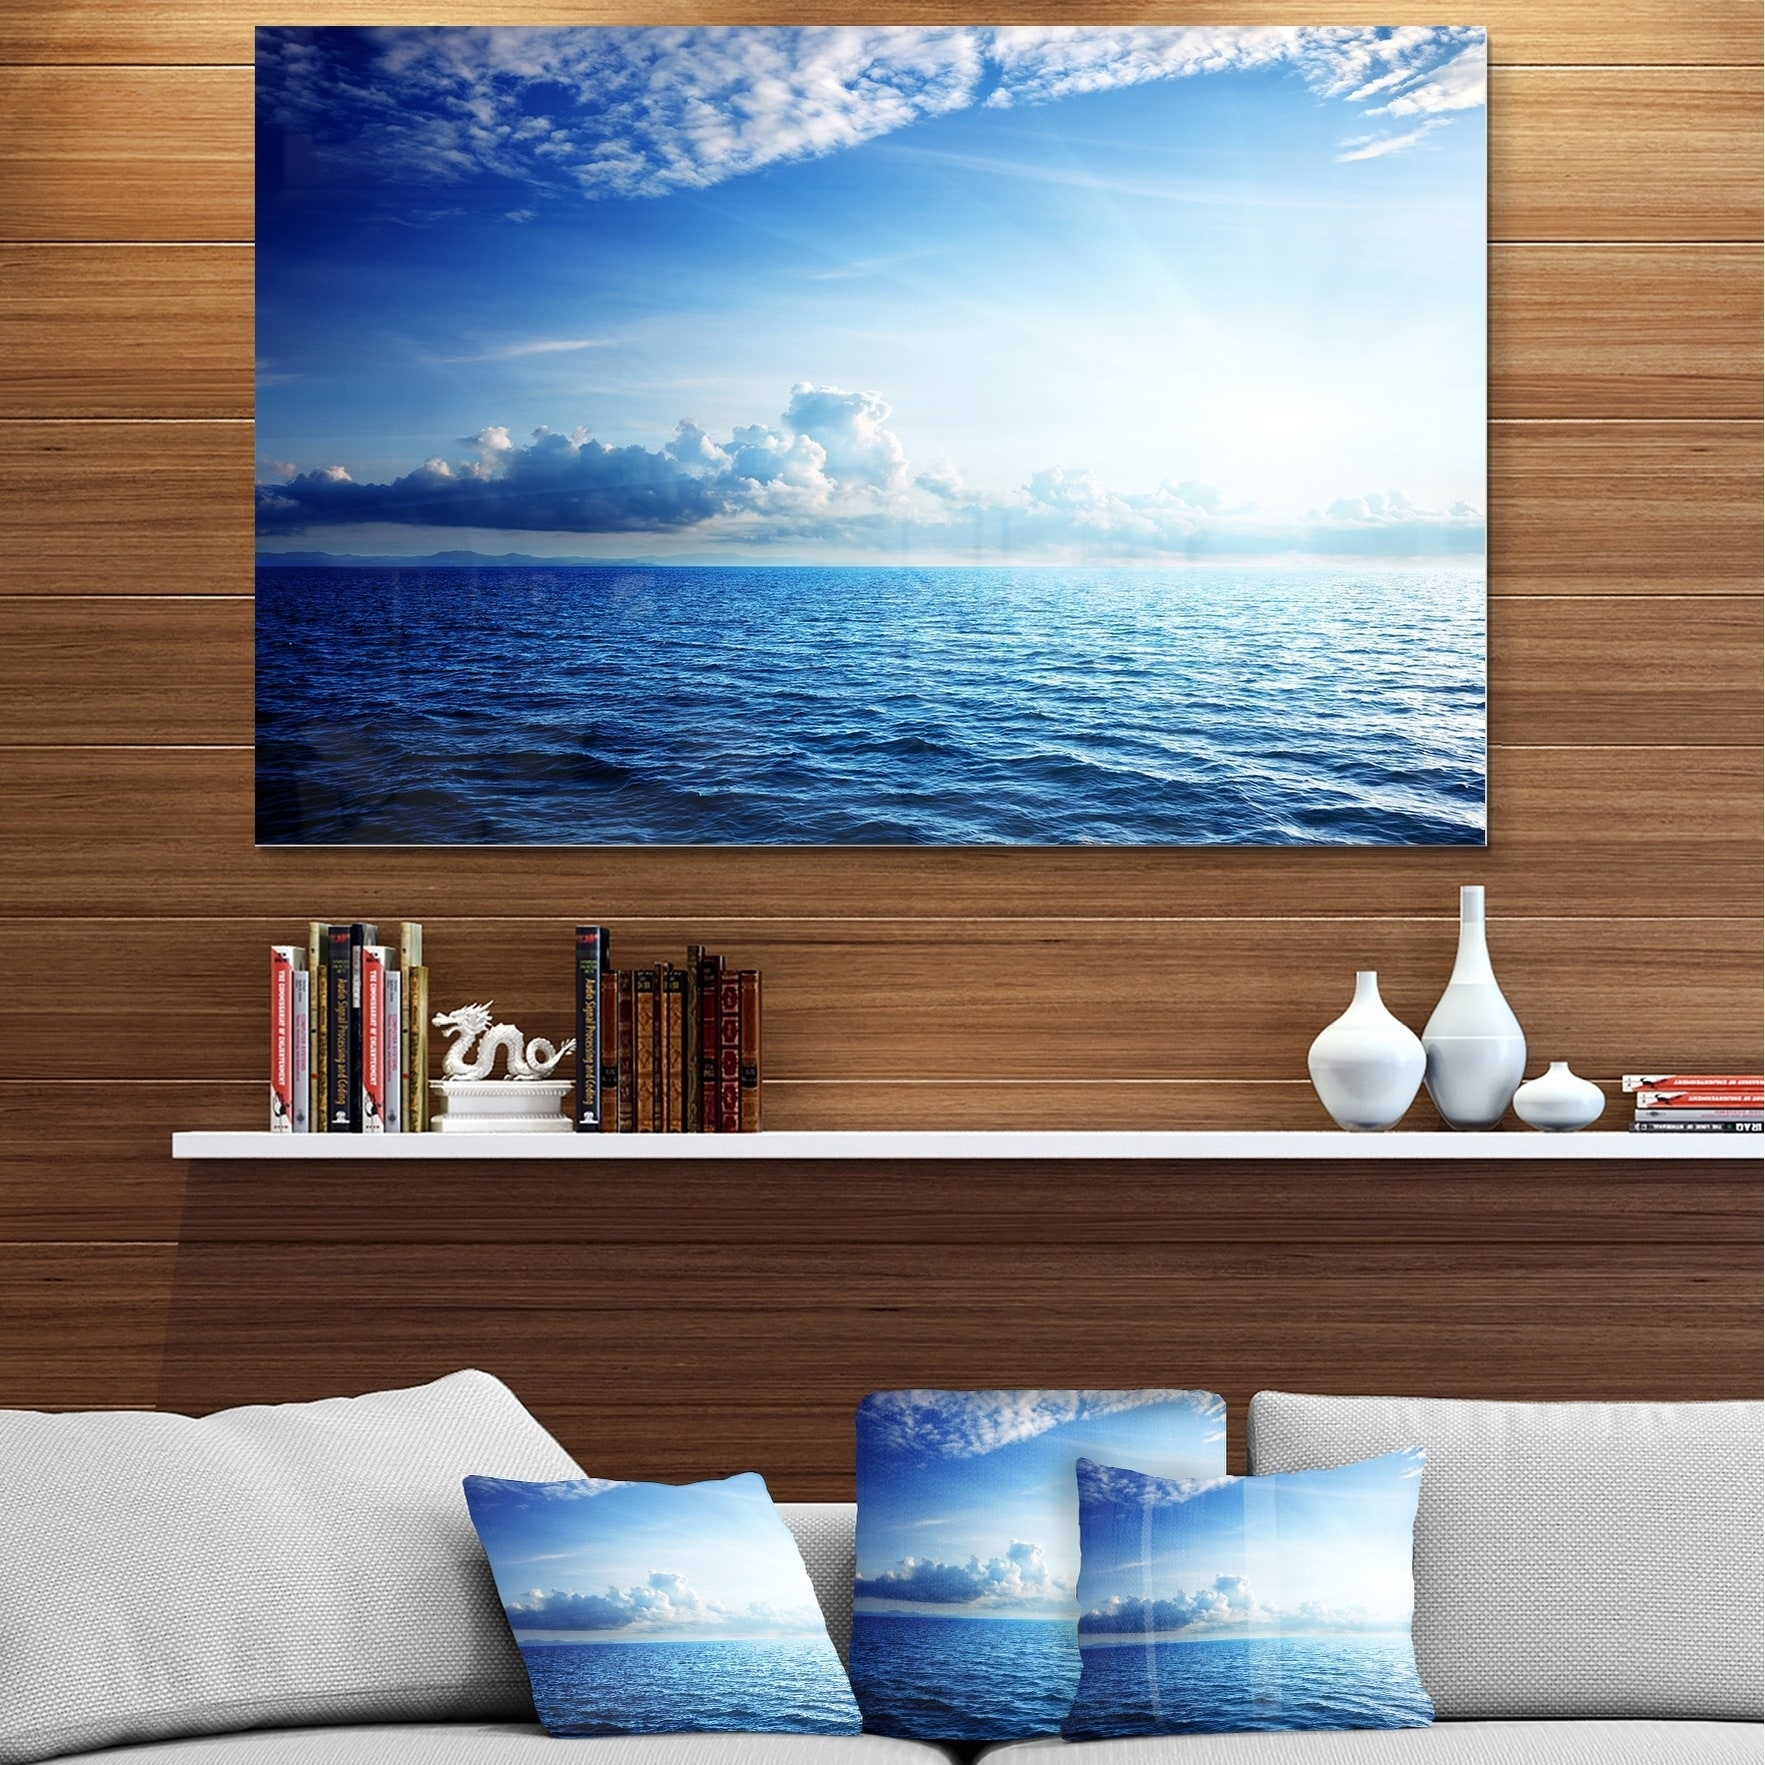 Blue Caribbean Sea And Perfect Blue Sky Extra Large Seascape Glossy Metal Wall Art Overstock 12786781